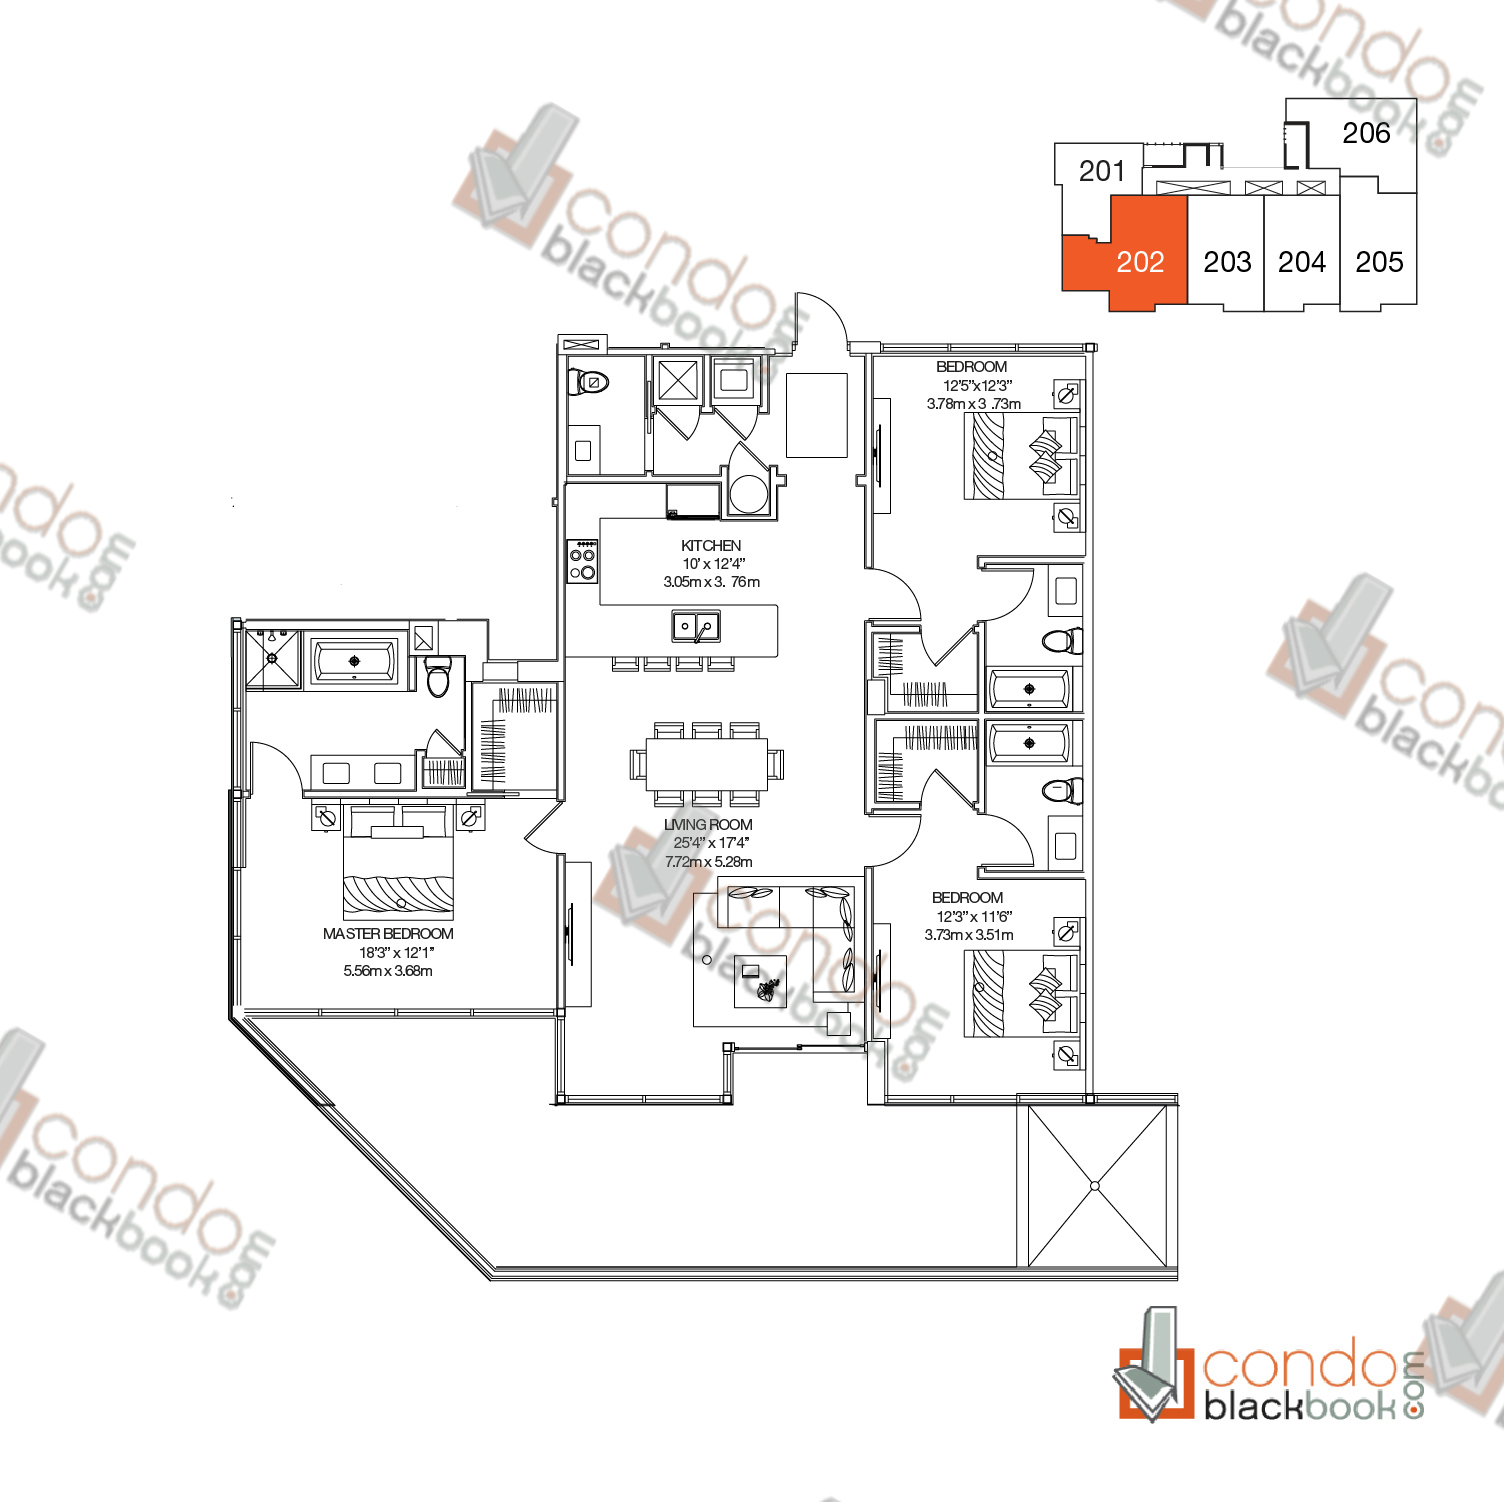 Floor plan for Buena Vista Villas Design District / Buena Vista Miami, model Unit 202, line 02, 3/3.5 bedrooms, 1,764 sq ft